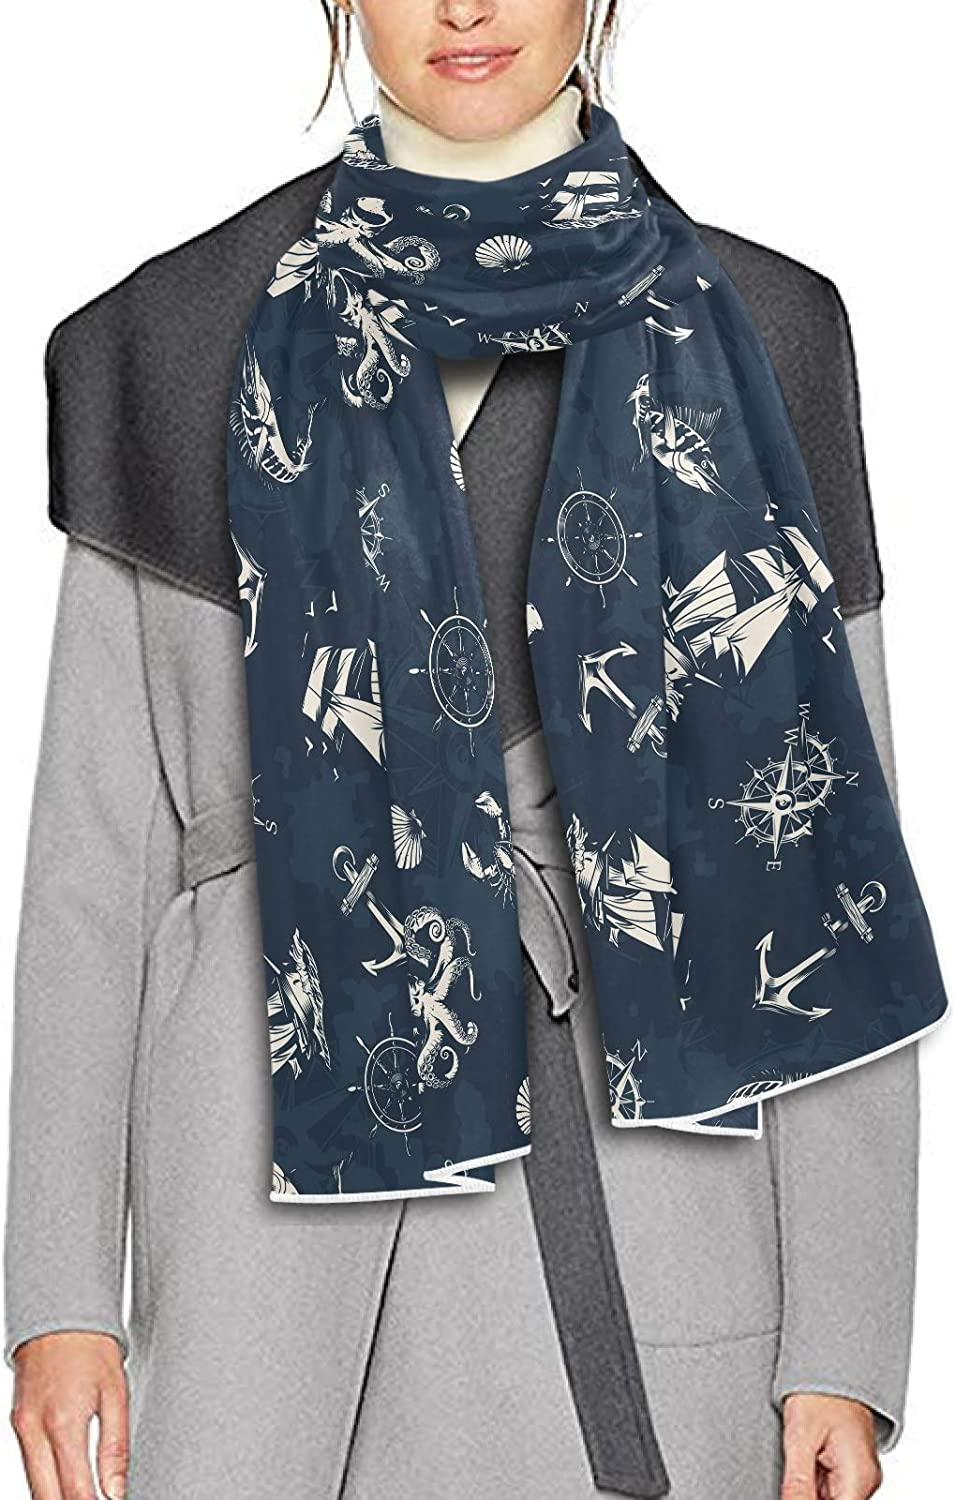 Scarf for Women and Men Vintage Sea Nautical Anchors Blanket Shawl Scarves Wraps Soft Winter Large Scarves Lightweight